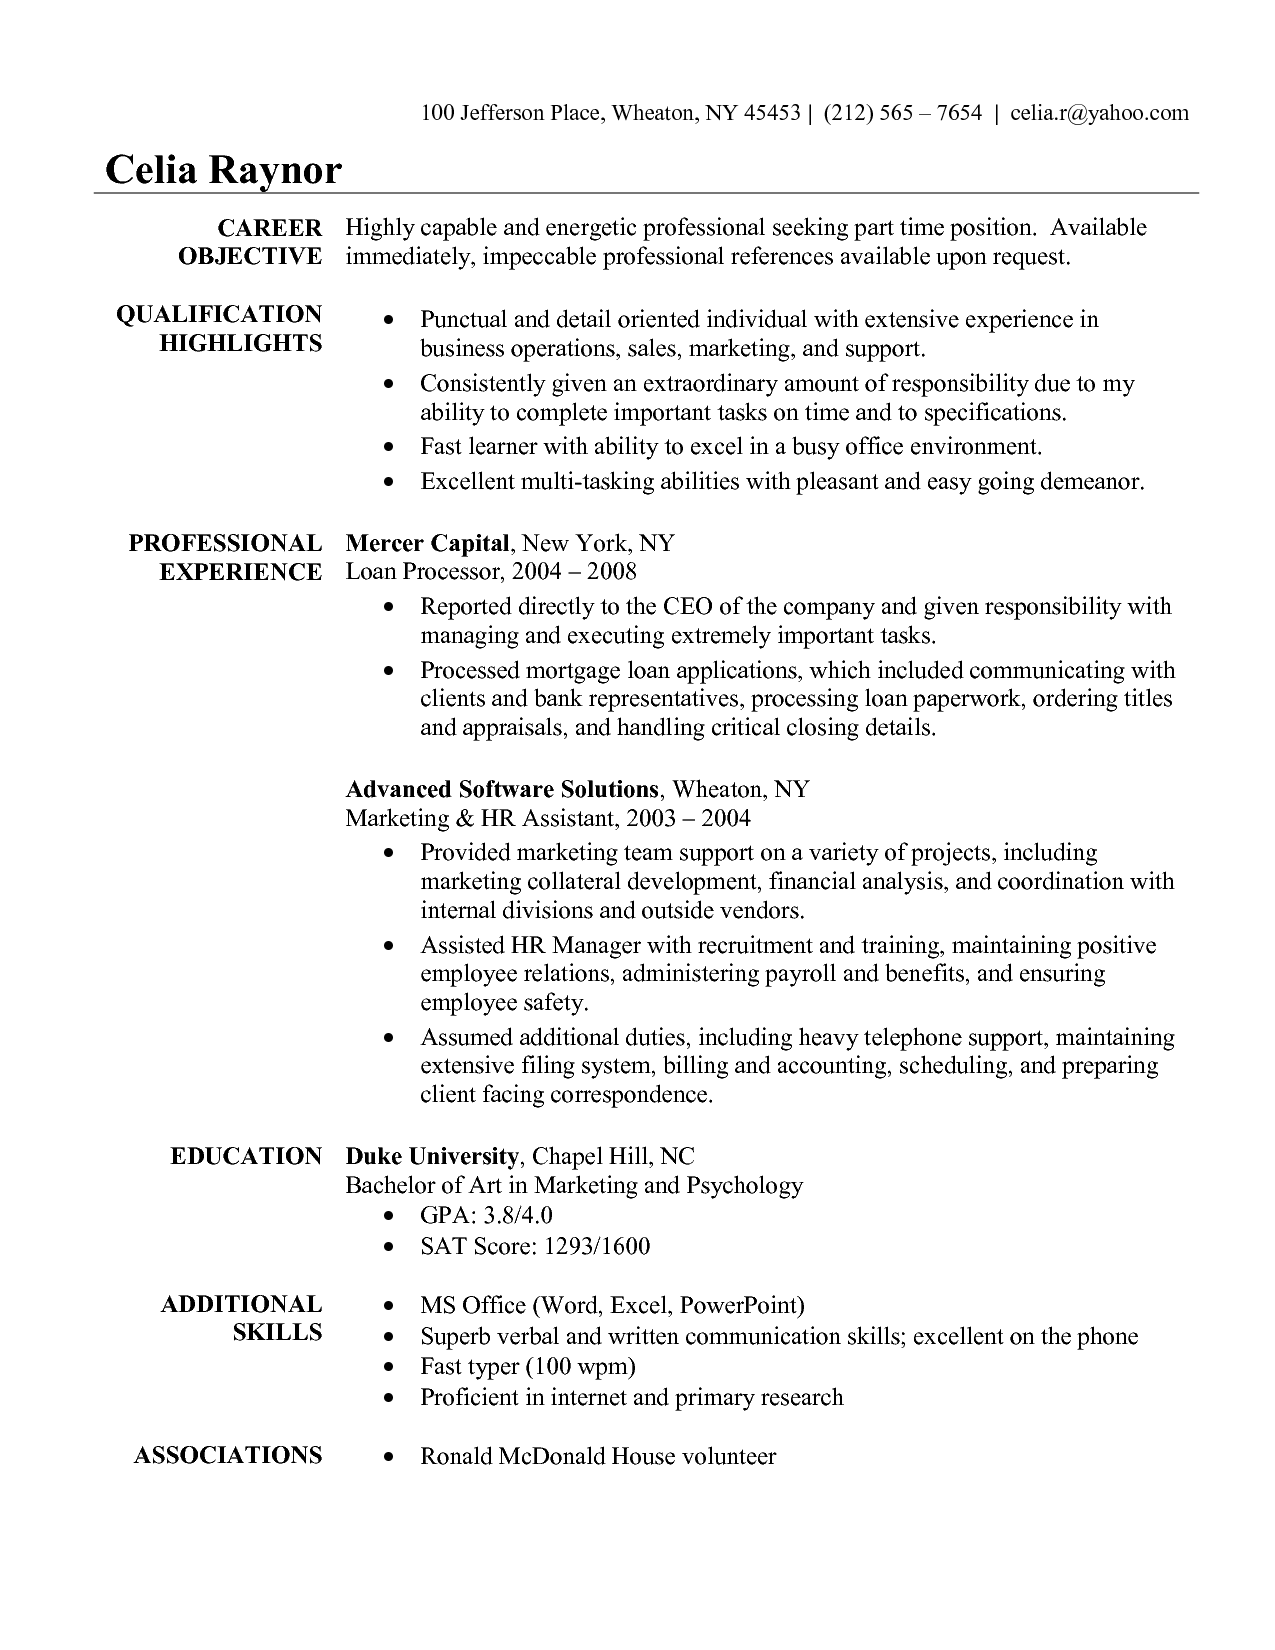 Duties Of Administrative Assistant For Resumes Goalblockety